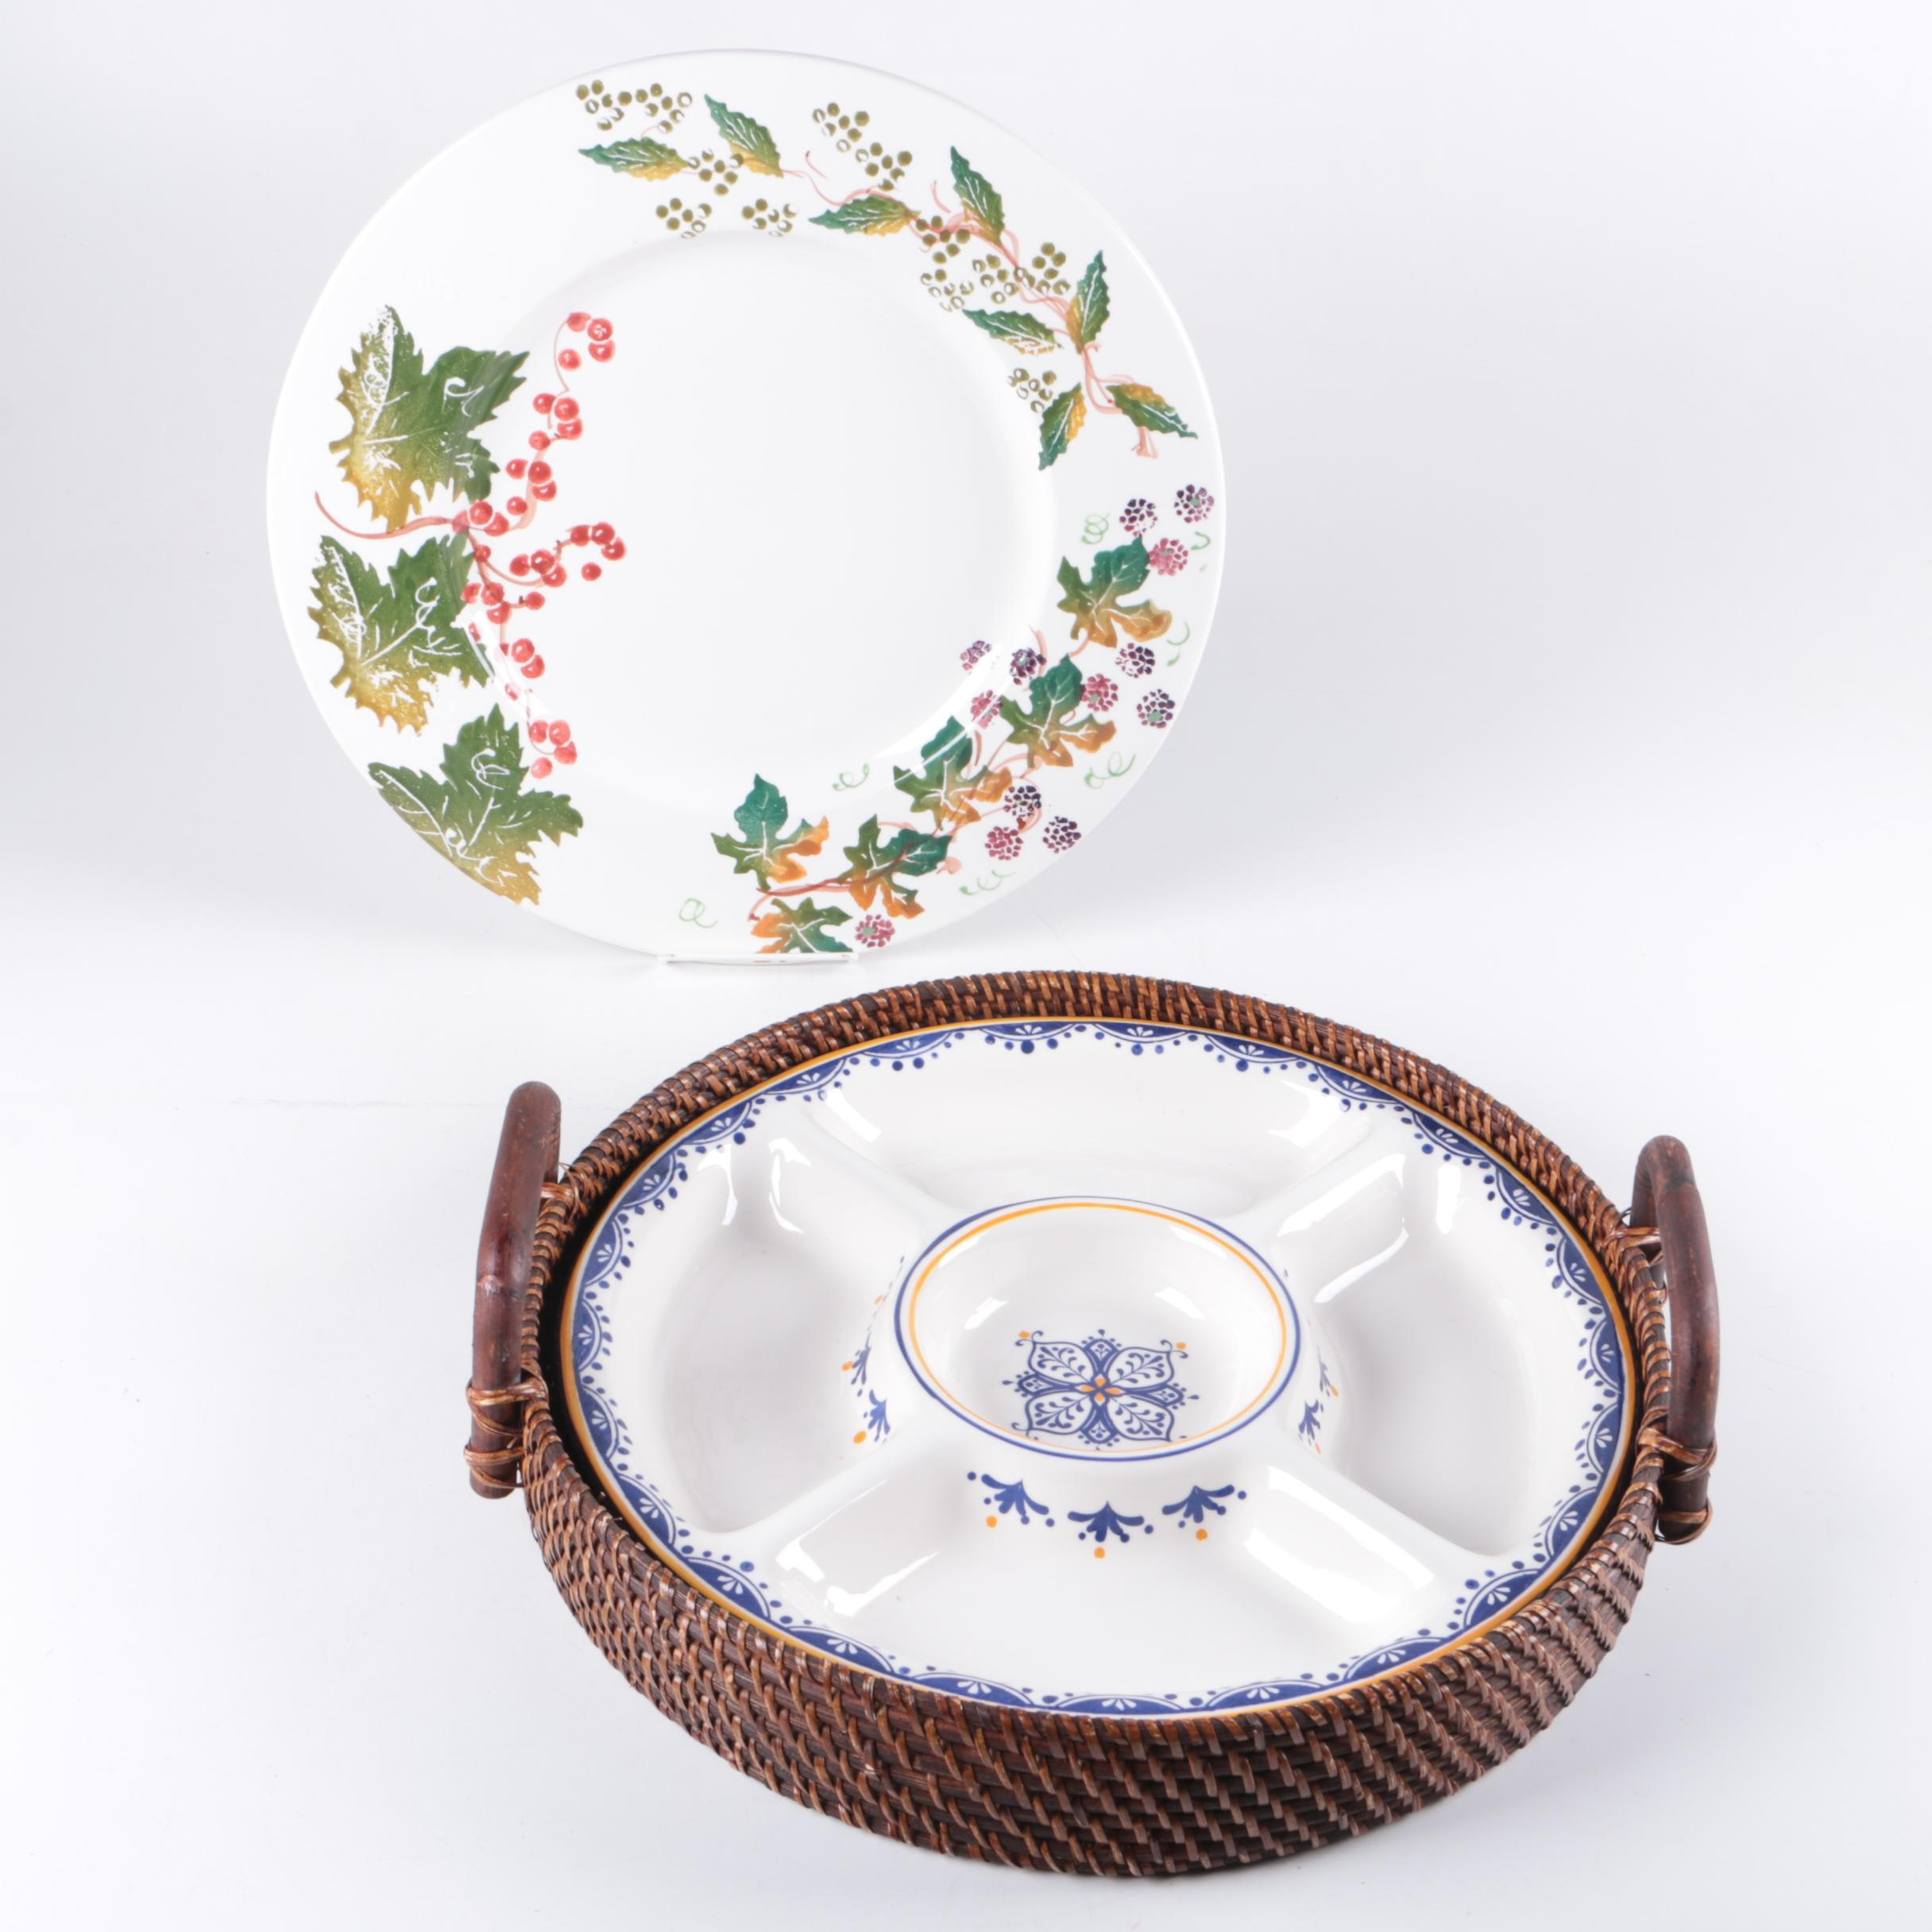 Italian Bizzirri St&ed White Porcelain Dish and Other Serveware ... & Italian Bizzirri Stamped White Porcelain Dish and Other Serveware : EBTH